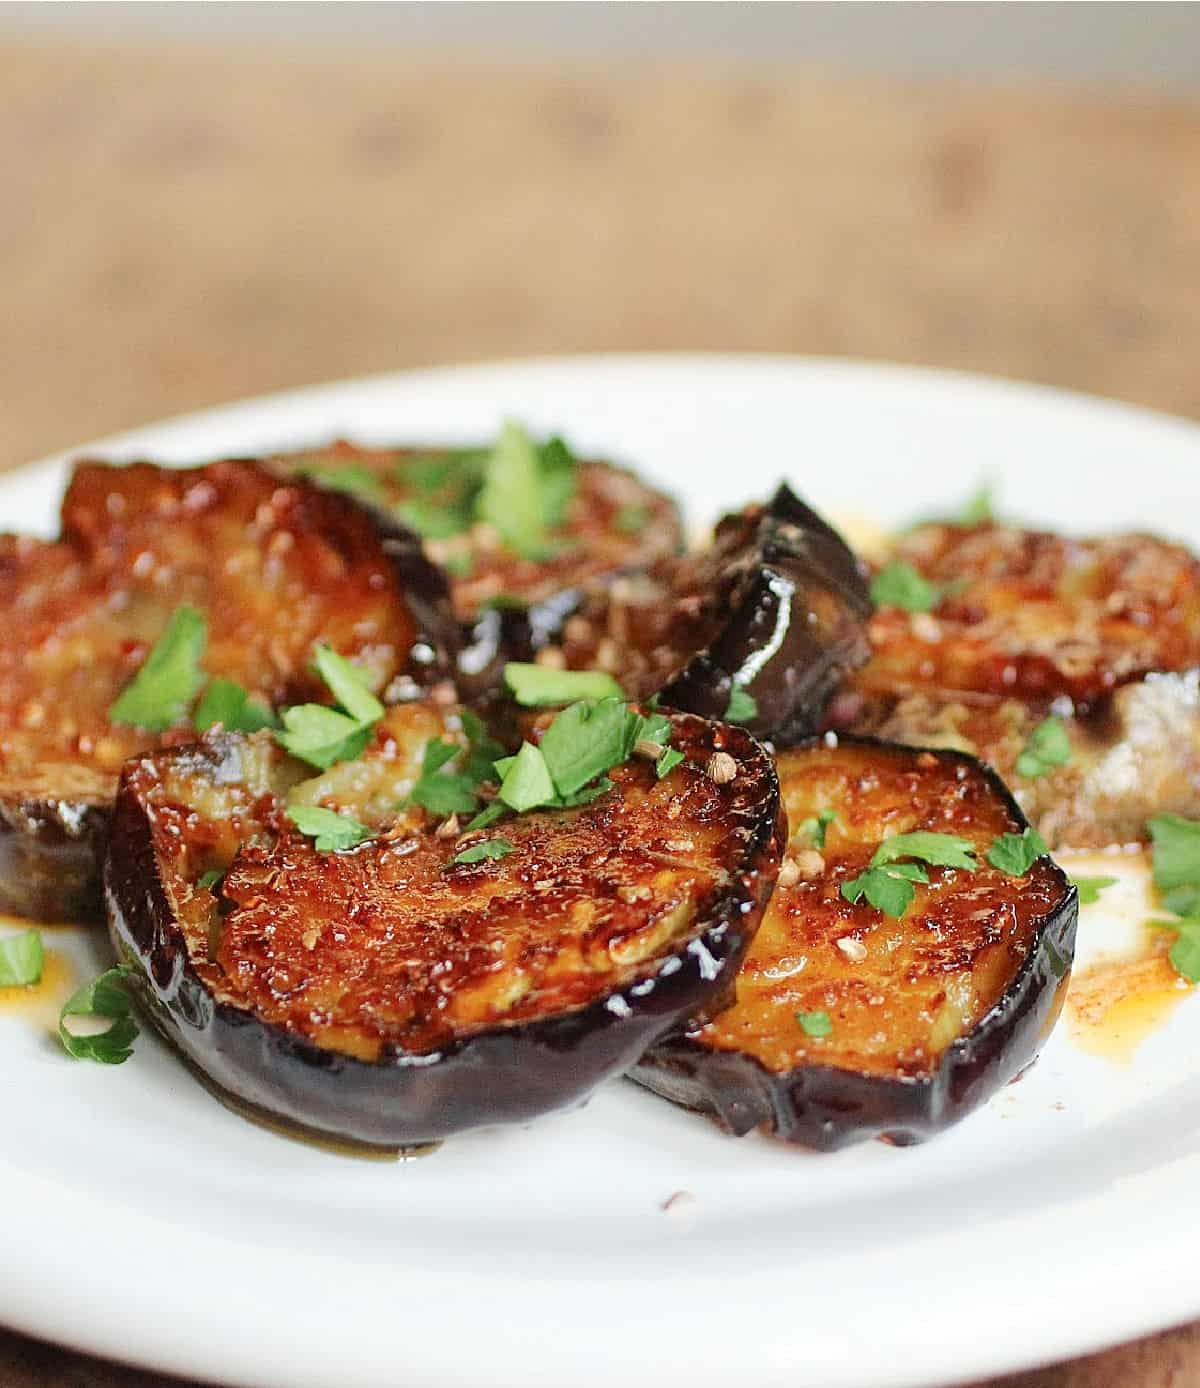 Partial view of white plate with eggplant rounds and herbs, wooden surface